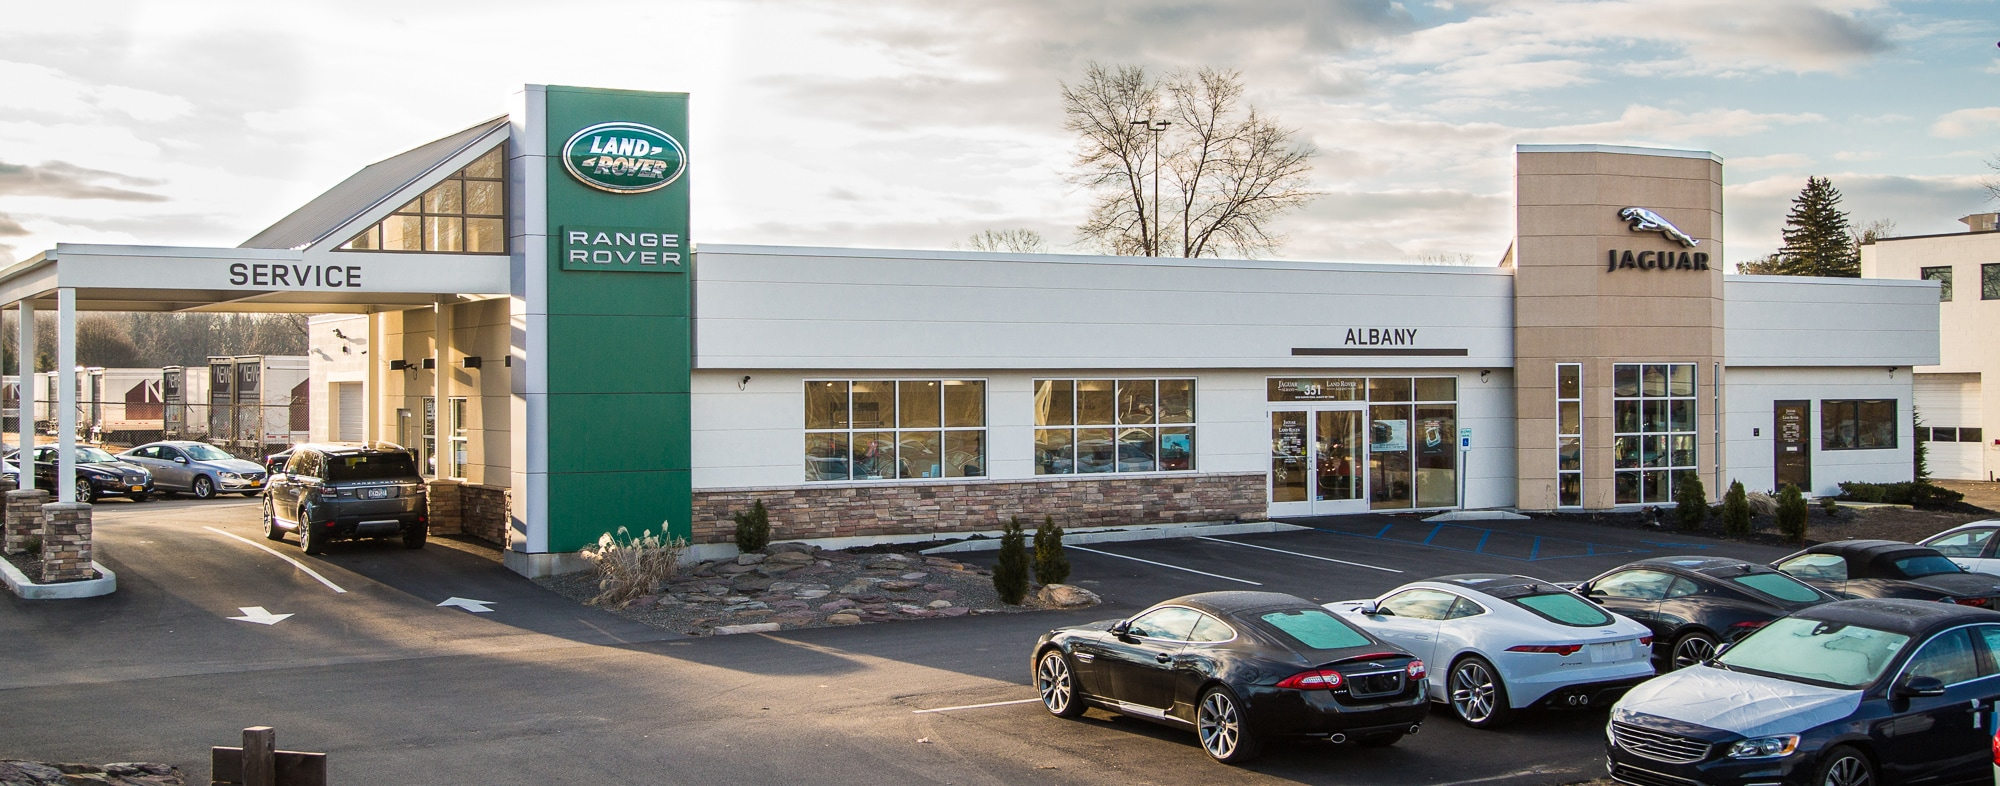 landrover rover news detail jaguar inaugurates surat dealerships opens land dealership in carzgarage jlr facility